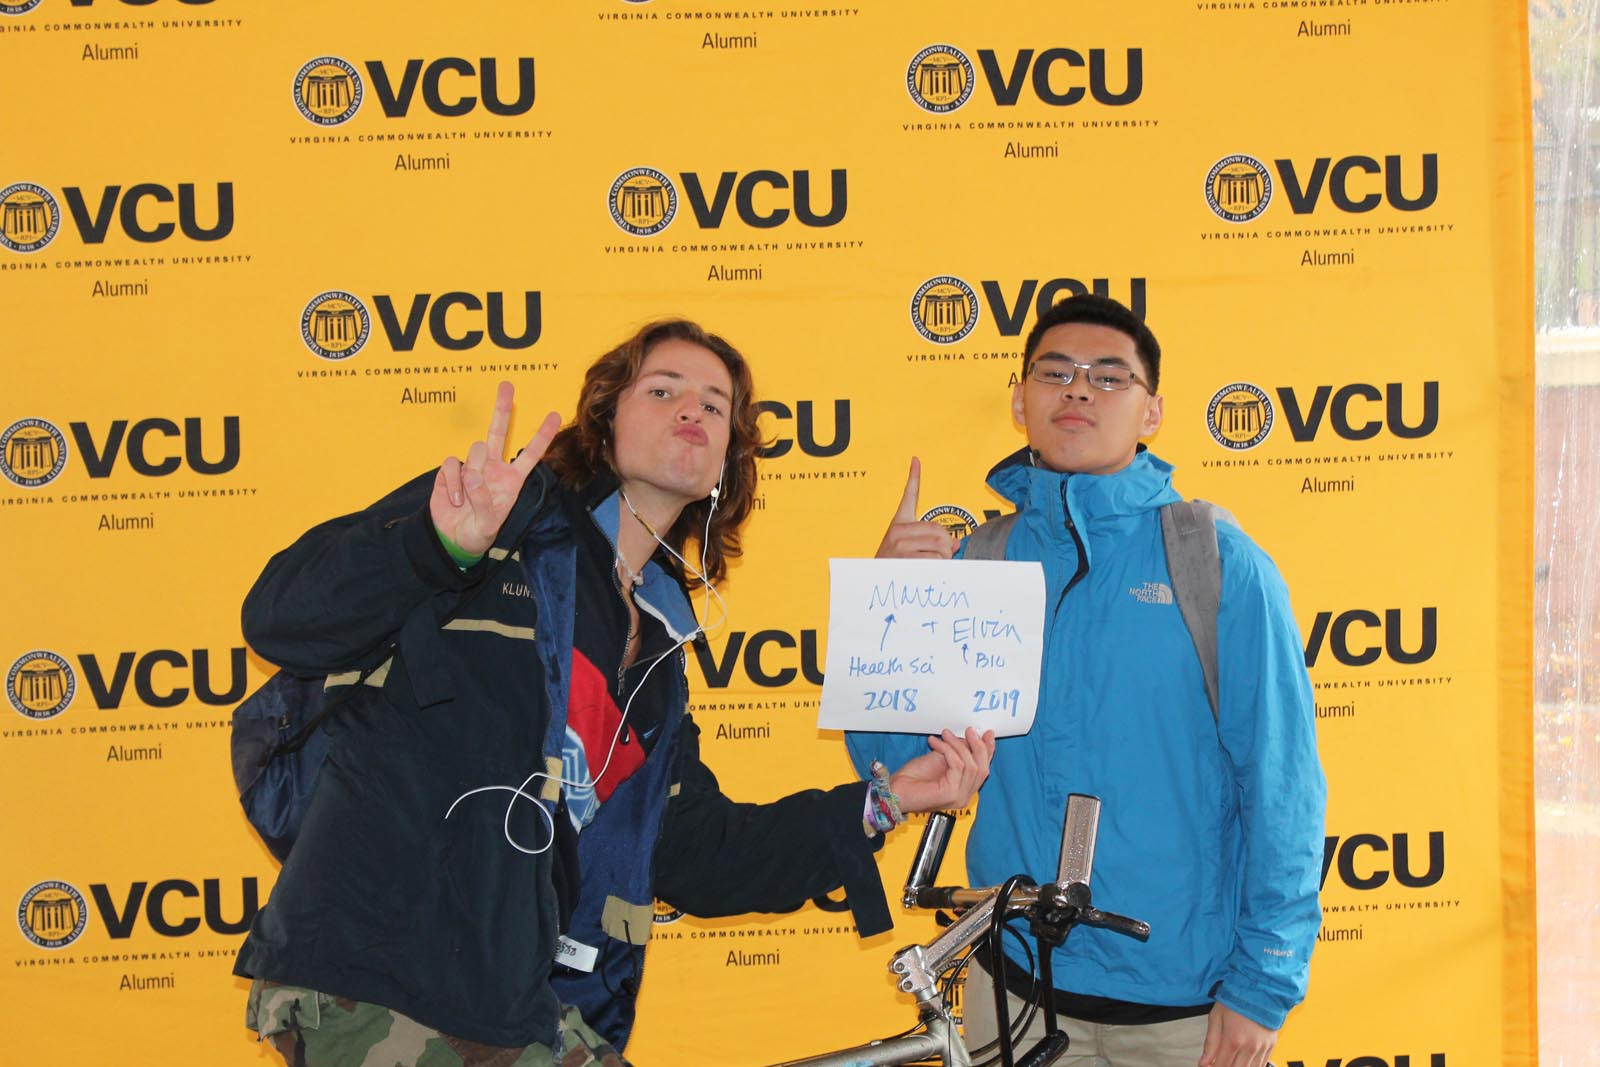 Two students with sign